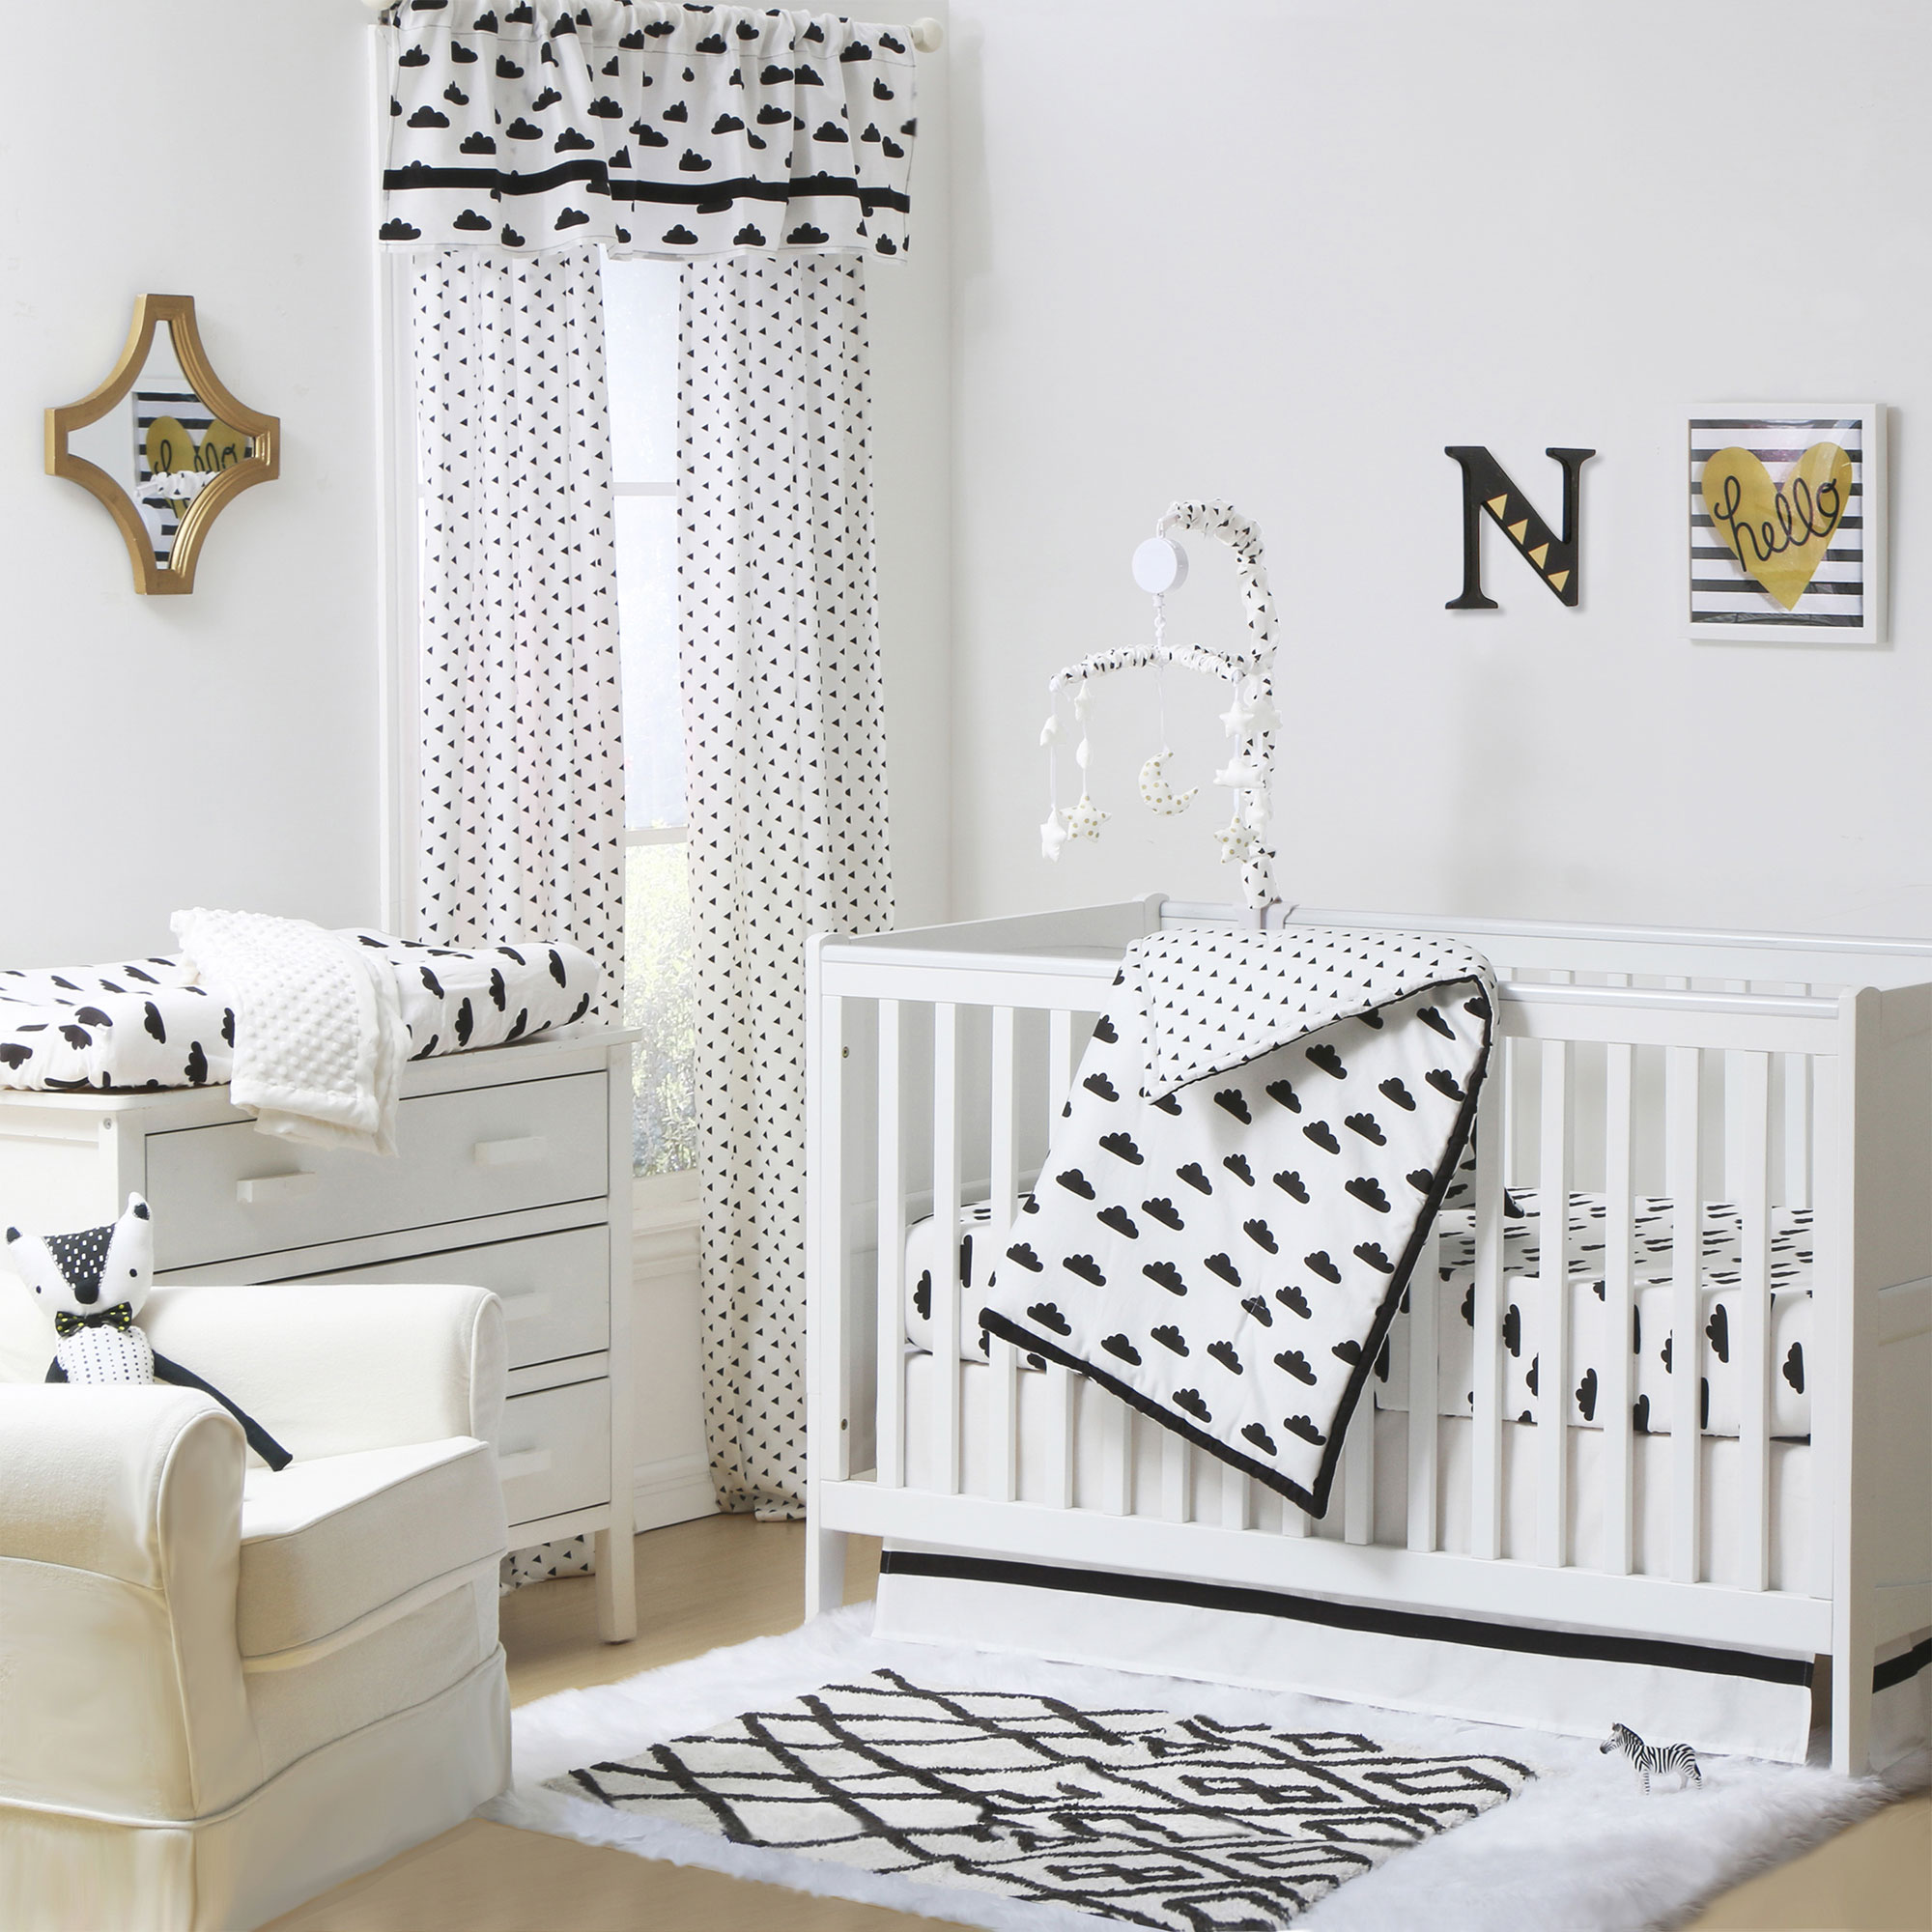 green ter pink set do baby full sheets blanket can navy boy cribs about western grey liner black crib diamond size and what purple sets nursery red of starter dark furniture blue chic white cream shabby aqua gray bedding you